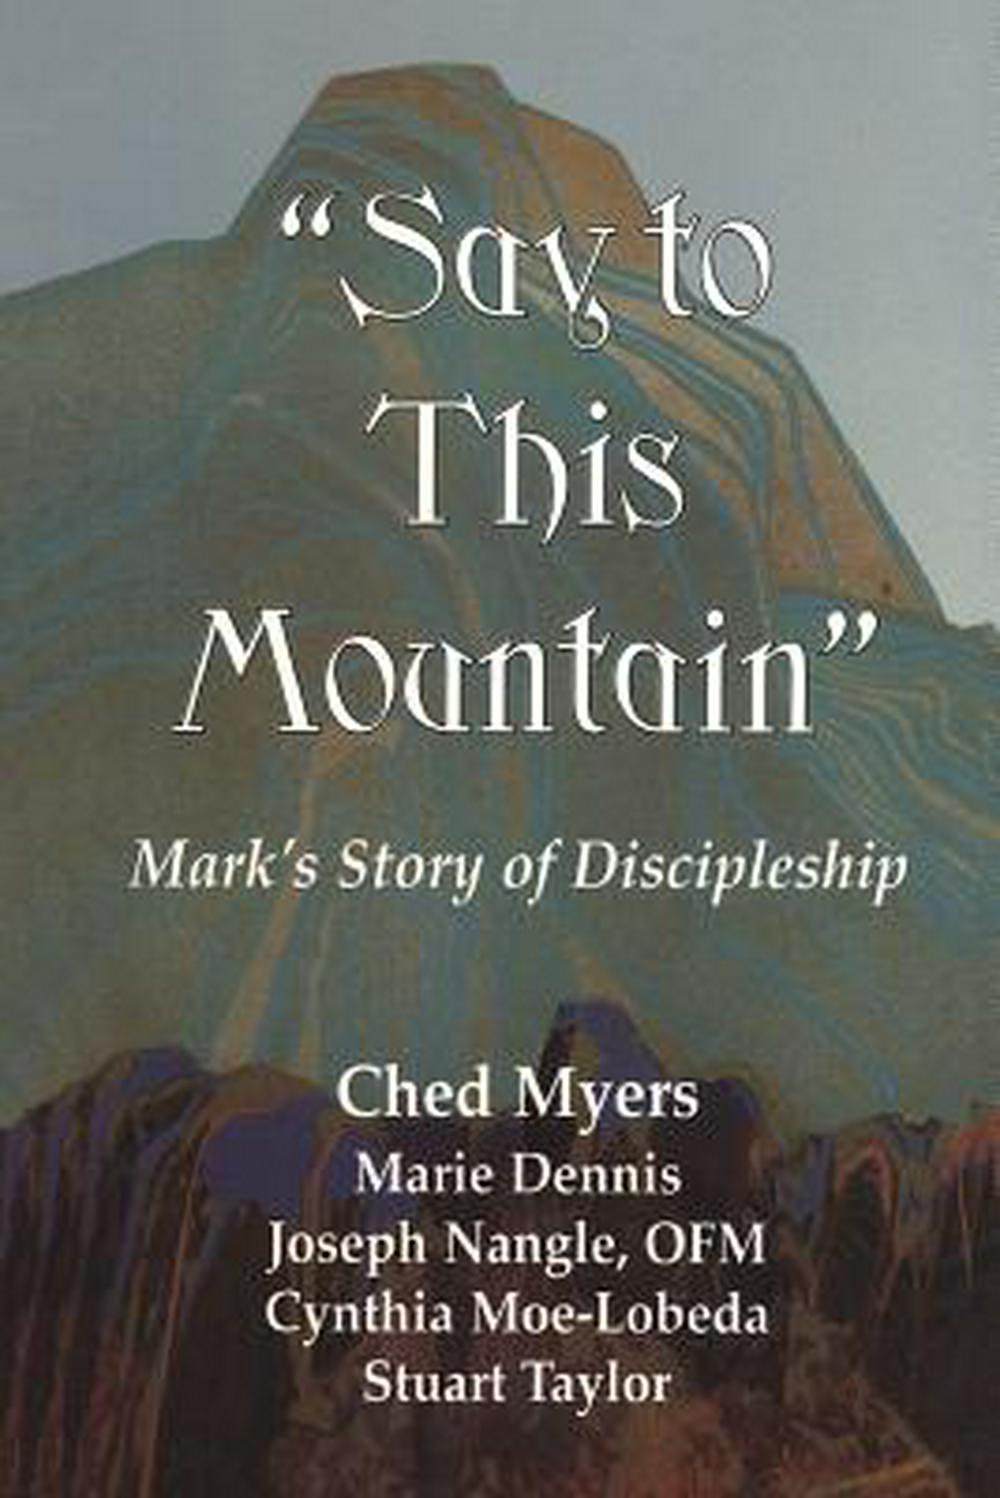 Say to This Mountain: Mark's Story of Discipleship by Ched Myers, ISBN: 9781570751004